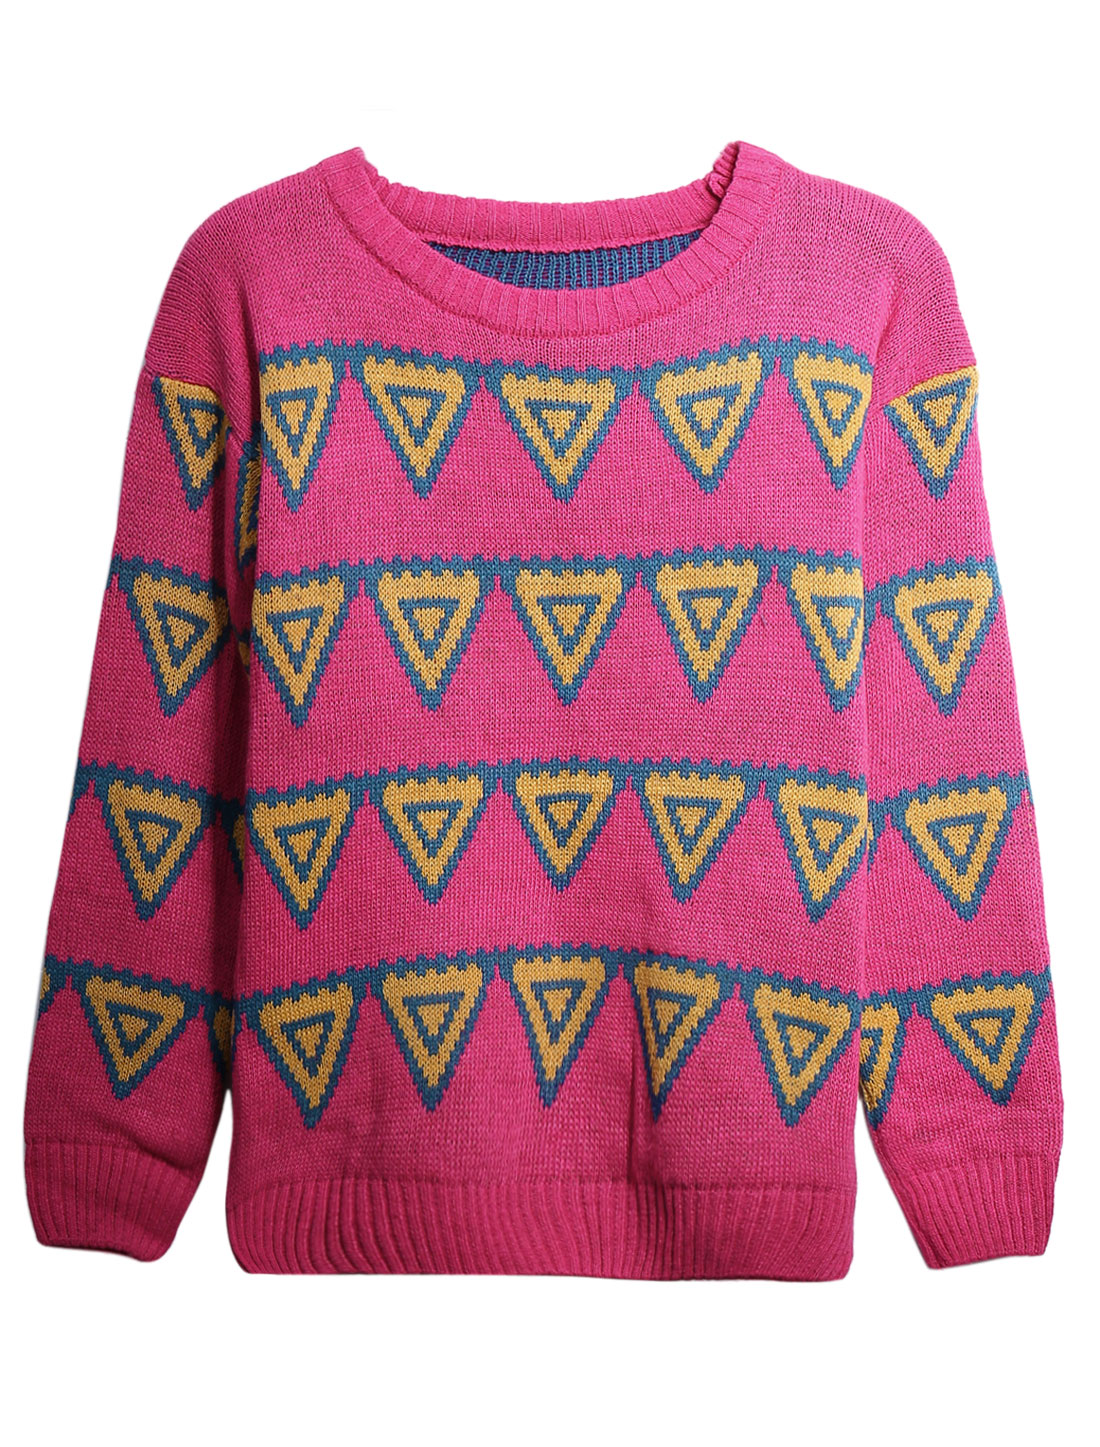 Lady Round Neck Inverted Triangle Pattern Long Sleeve Sweater Deep Pink S